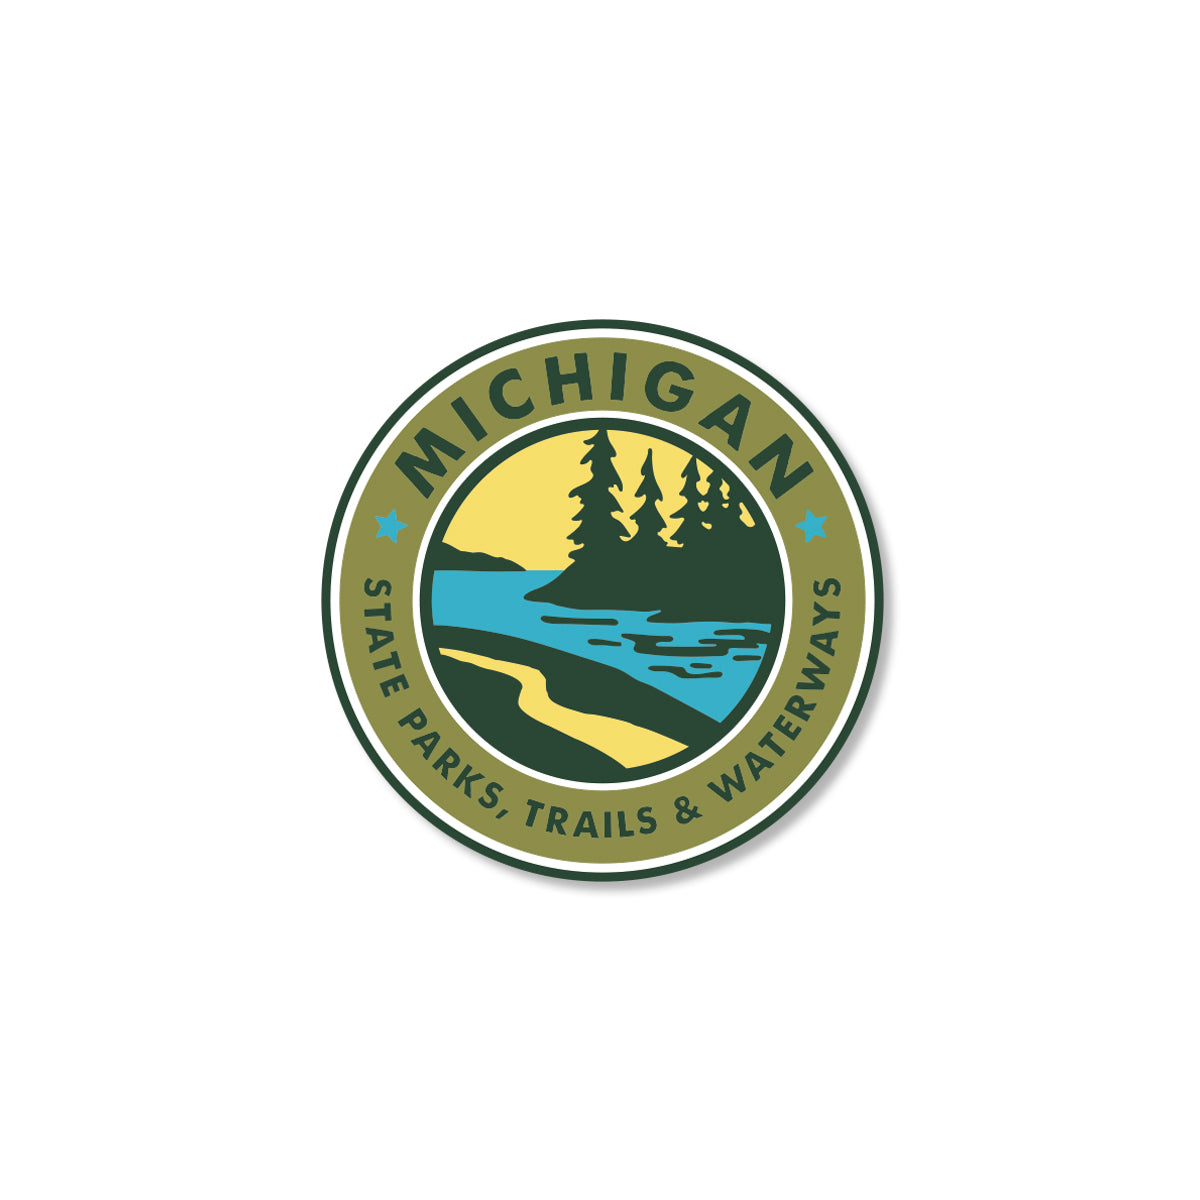 Parks Trails Waterways Michigan Sticker